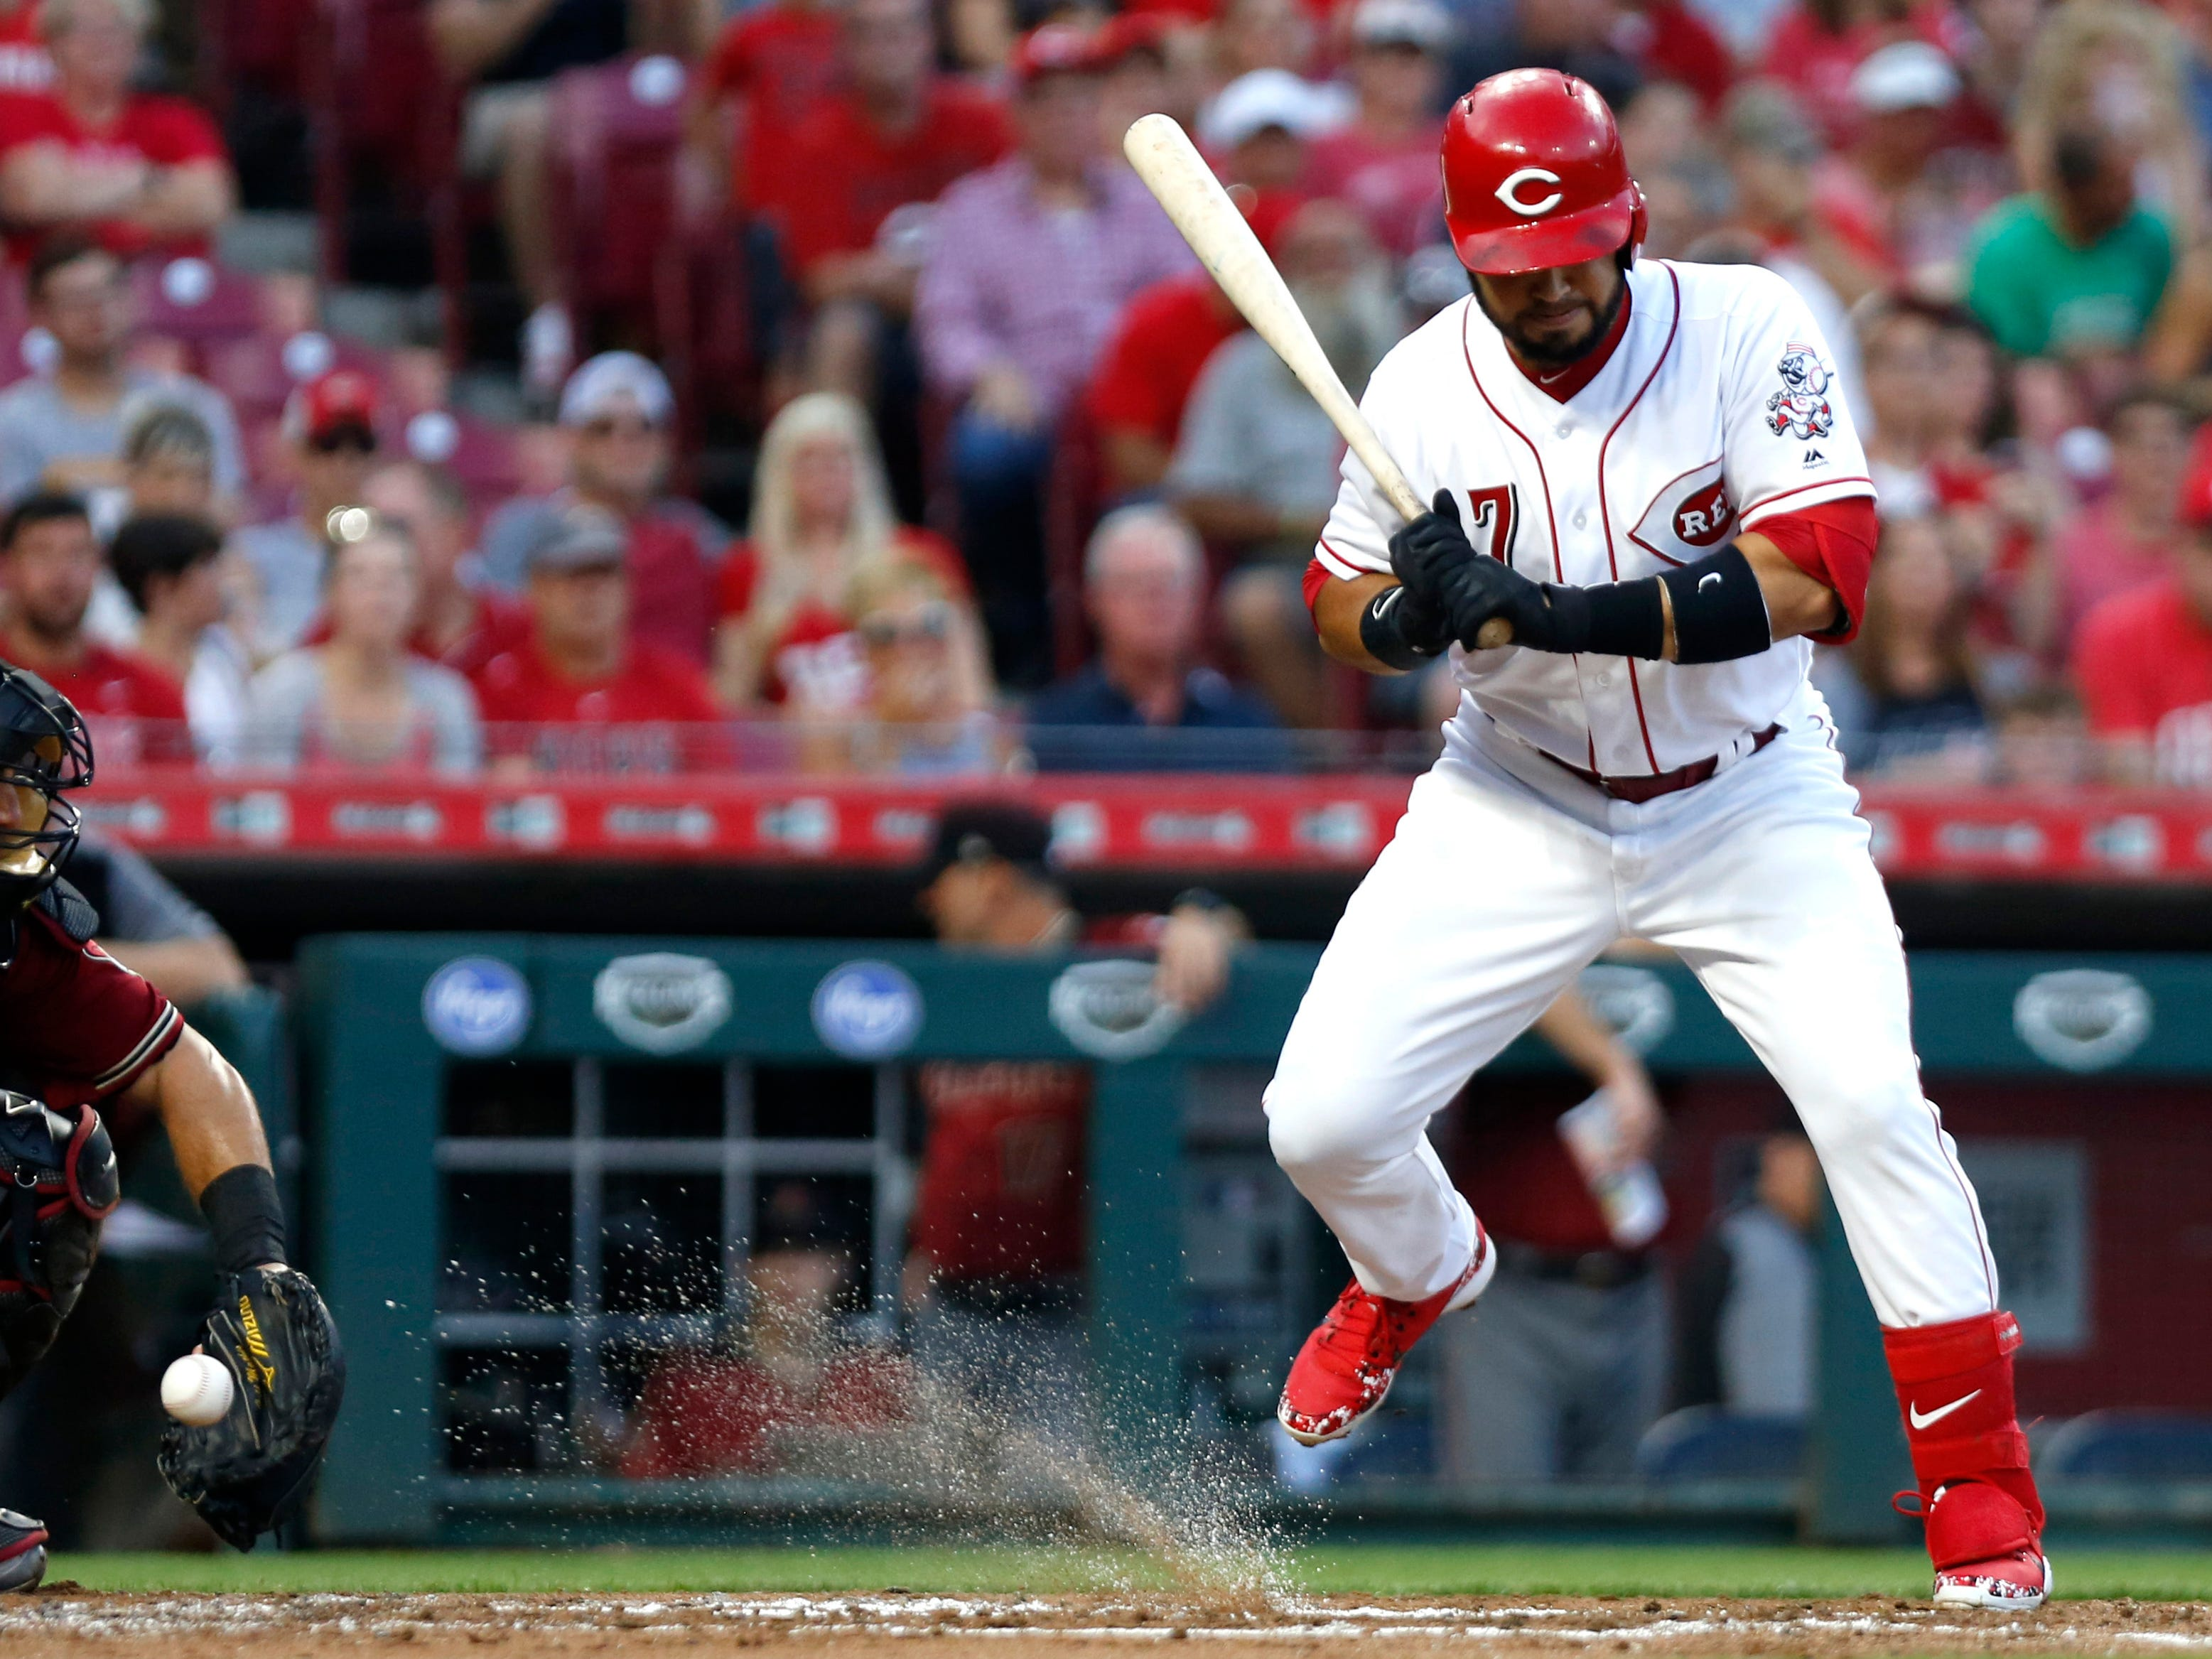 Aug 11, 2018; Cincinnati, OH, USA; Cincinnati Reds third baseman Eugenio Suarez (7) moves away from a pitch against the Arizona Diamondbacks during the first inning at Great American Ball Park. Mandatory Credit: David Kohl-USA TODAY Sports